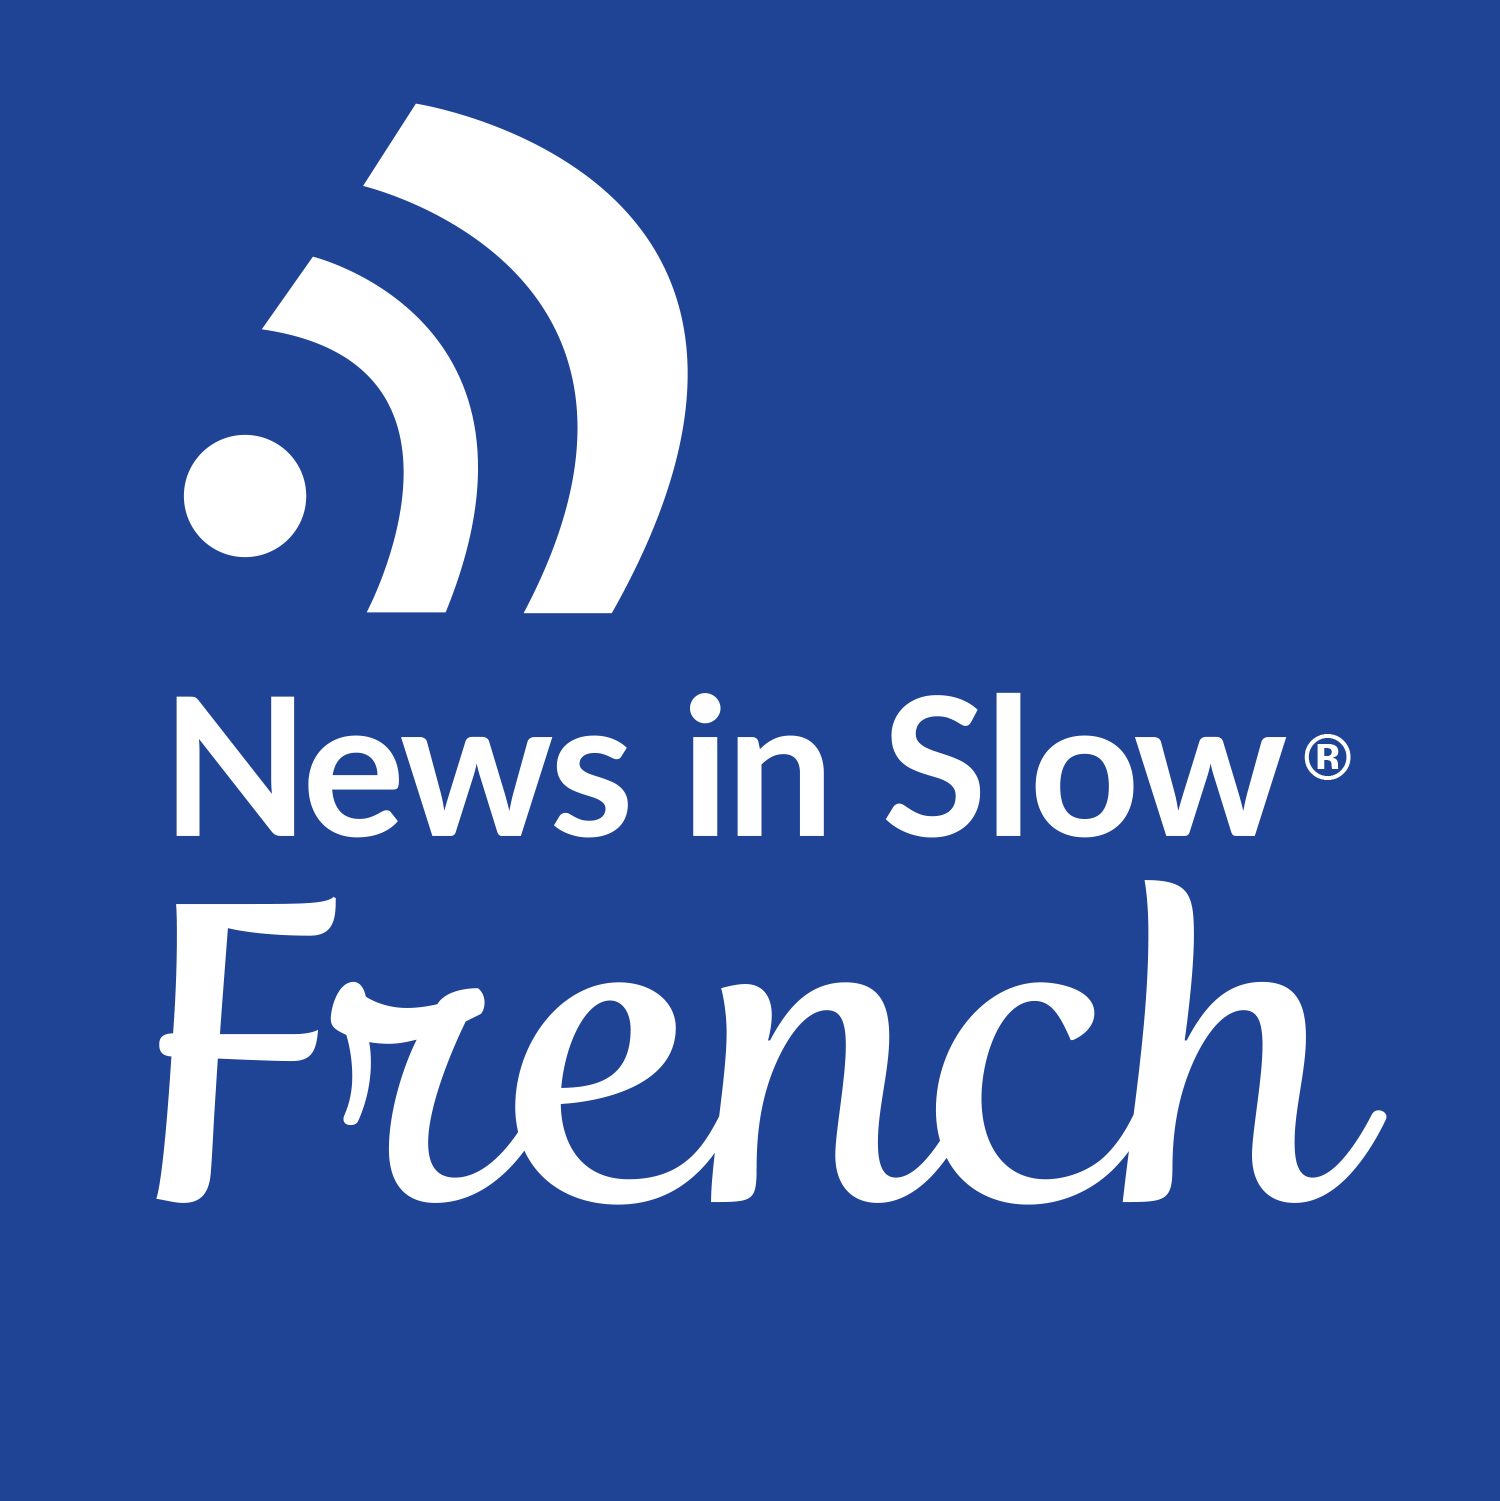 FRANSK slow news